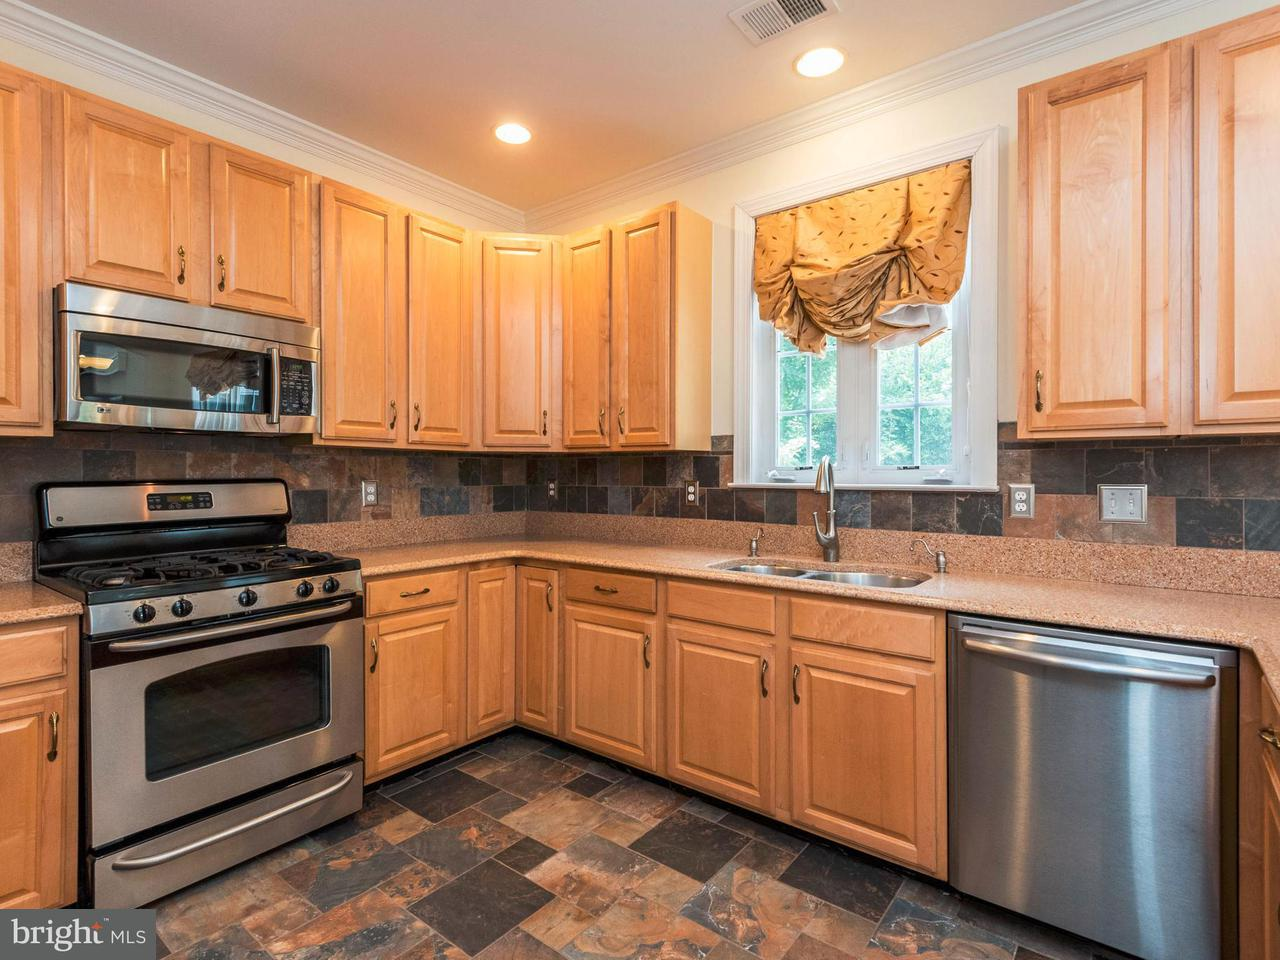 Single Family Home for Sale at 1515 HORNBEAM Drive 1515 HORNBEAM Drive Crofton, Maryland 21114 United States